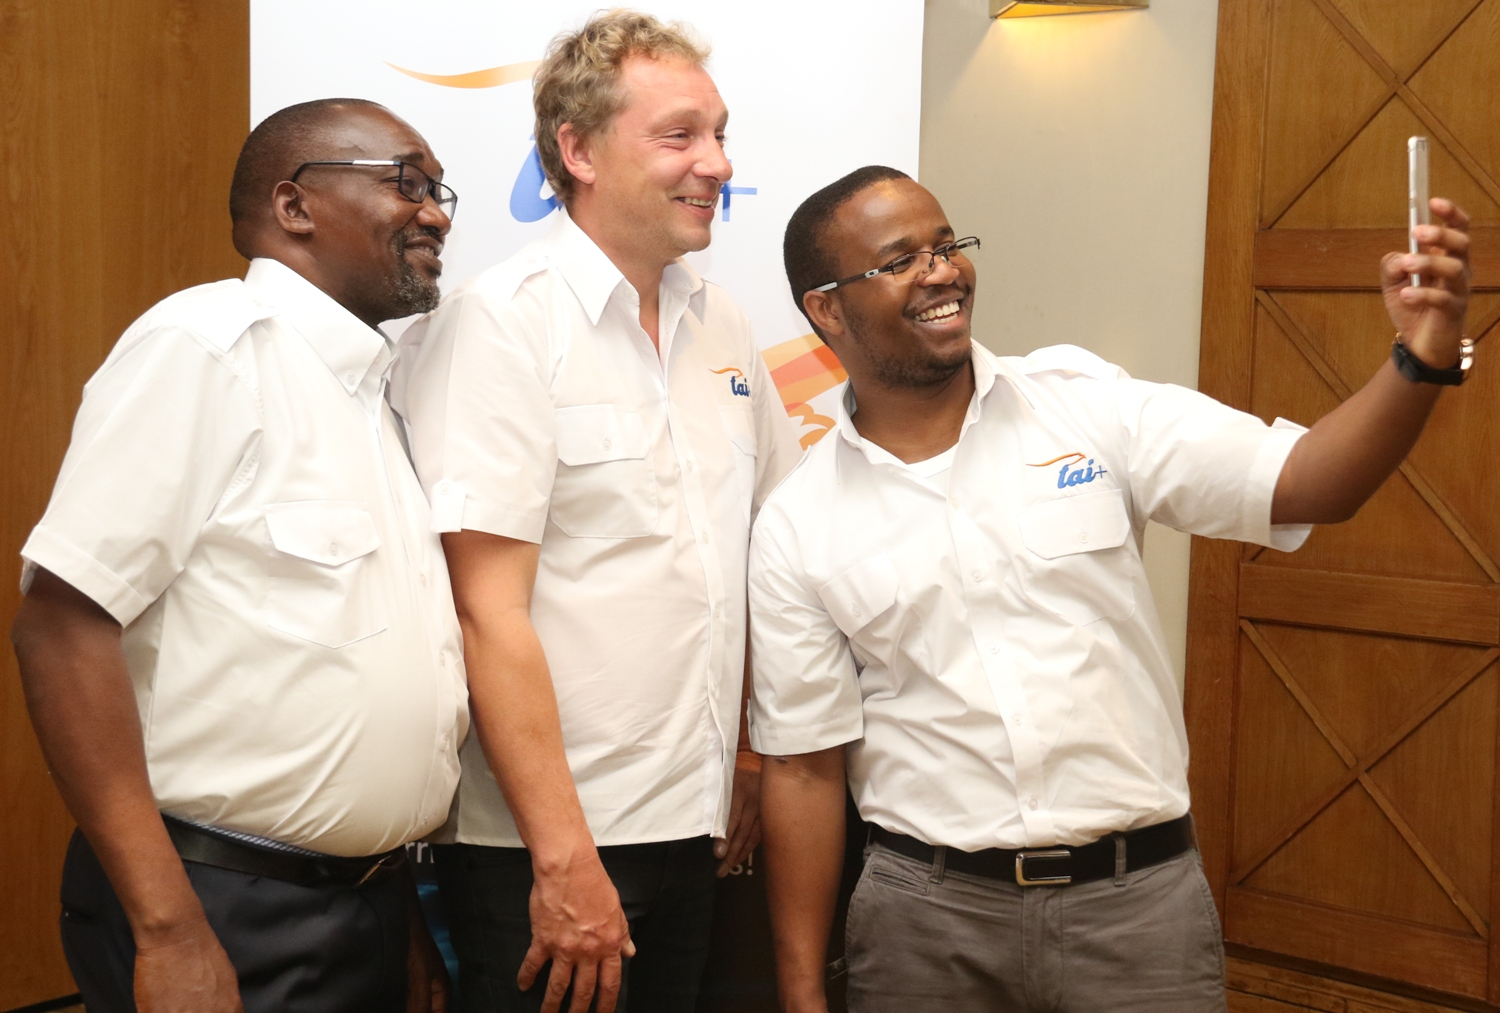 Tai+ App, an Estonia based app, has been launched in Kenya to provide reltime analytics in the logistics industry. www.businesstoday.co.ke